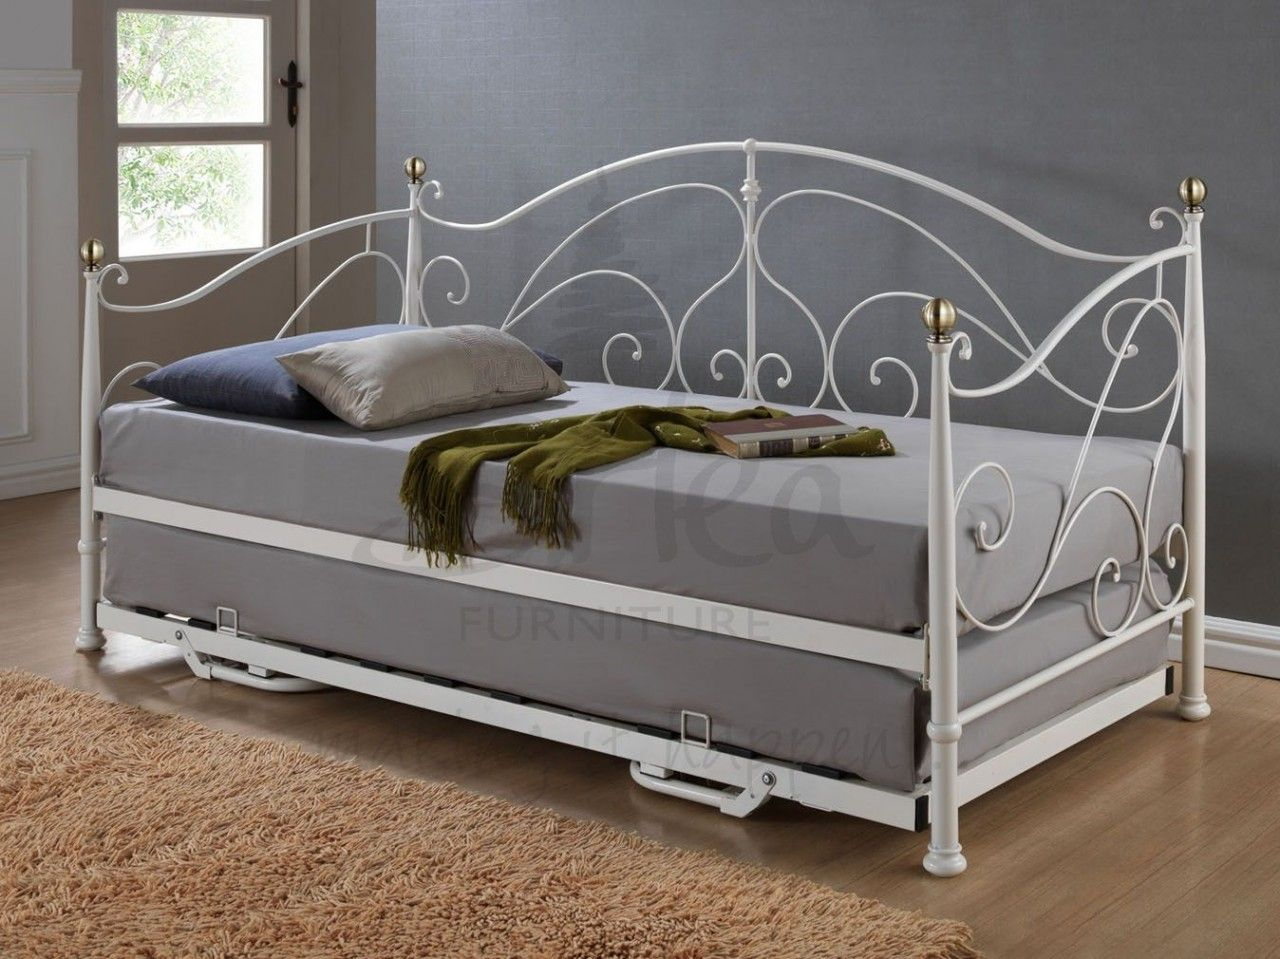 Trundle Bed Is Highly Used Trundle Bed Is Used A Lot For Its